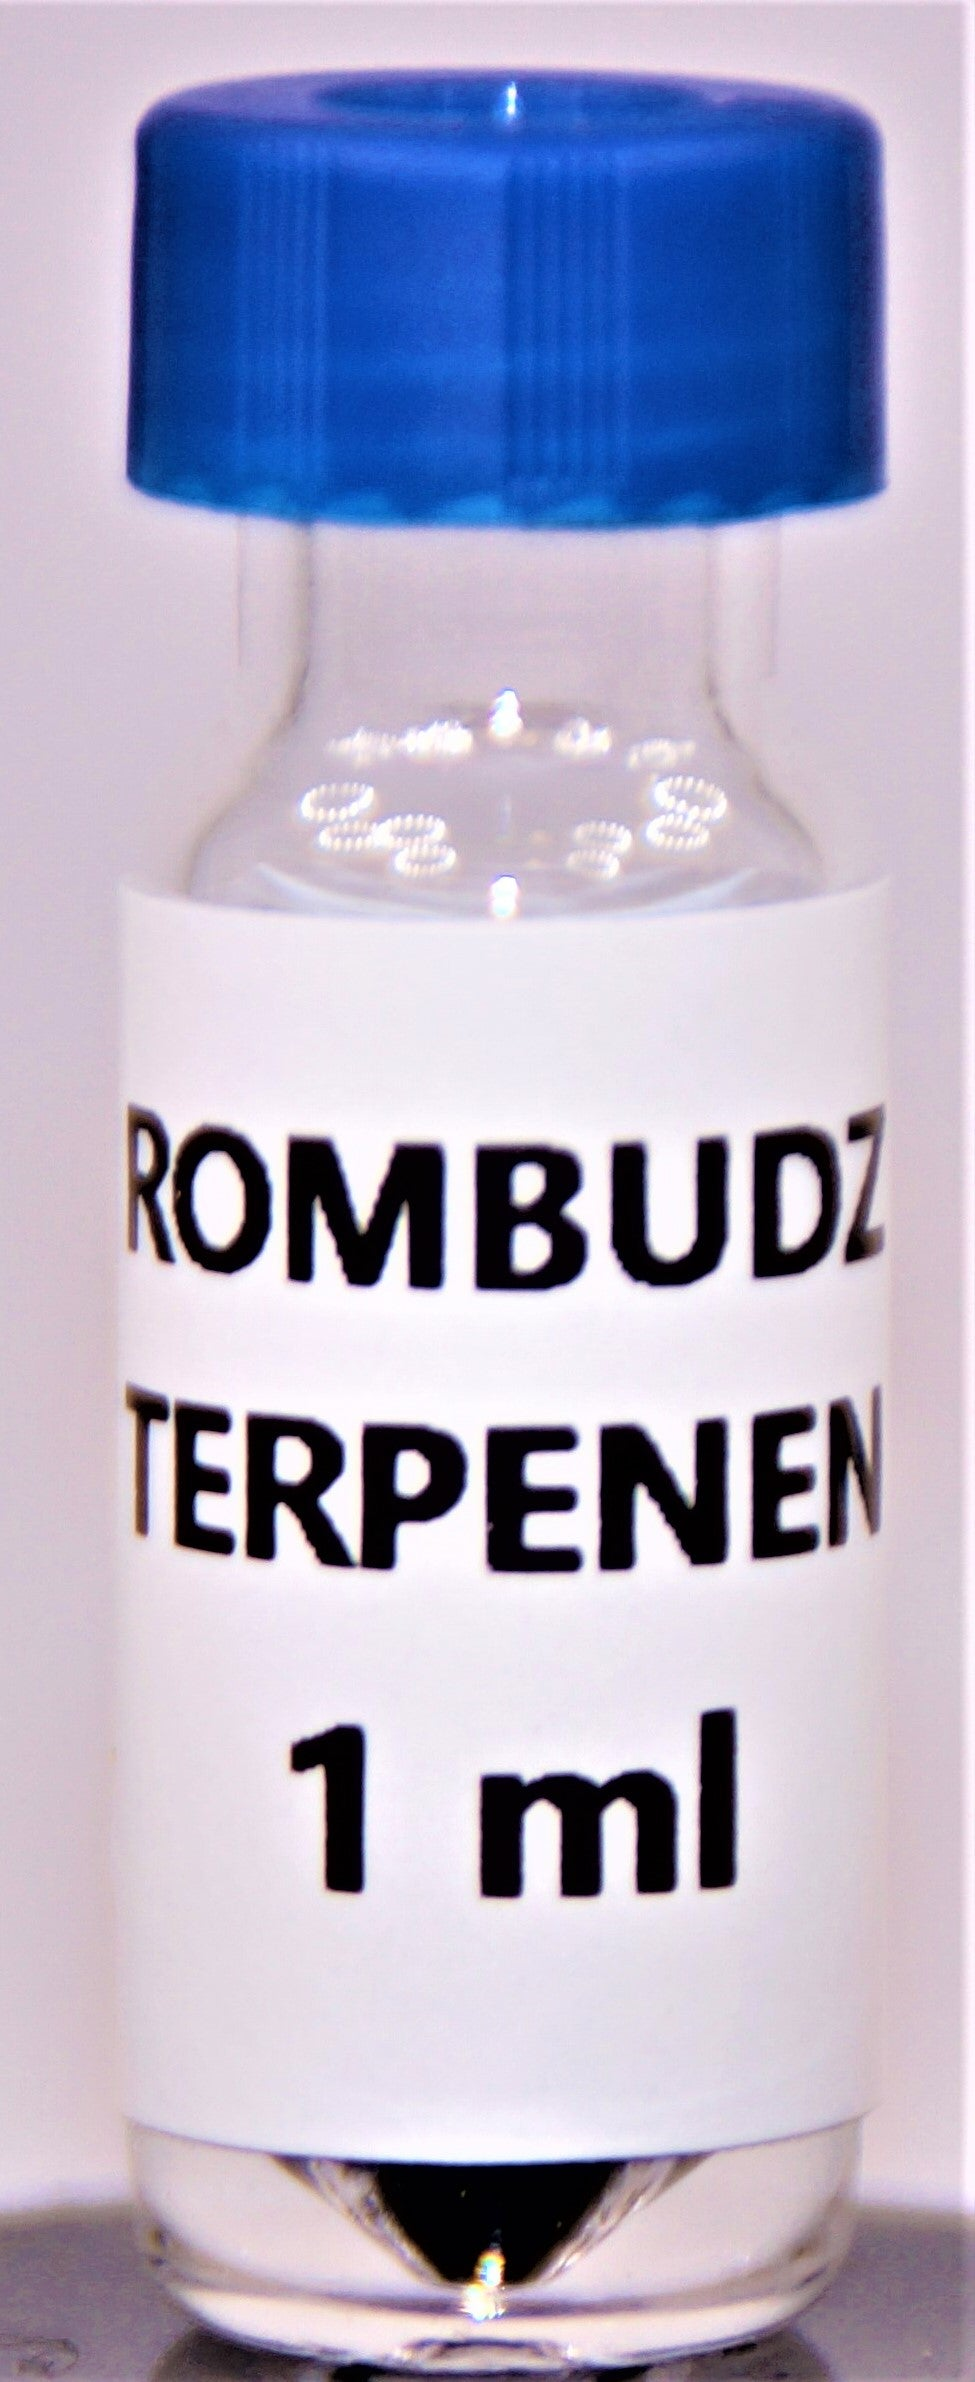 Rombudz Pineapple Express Terpenen